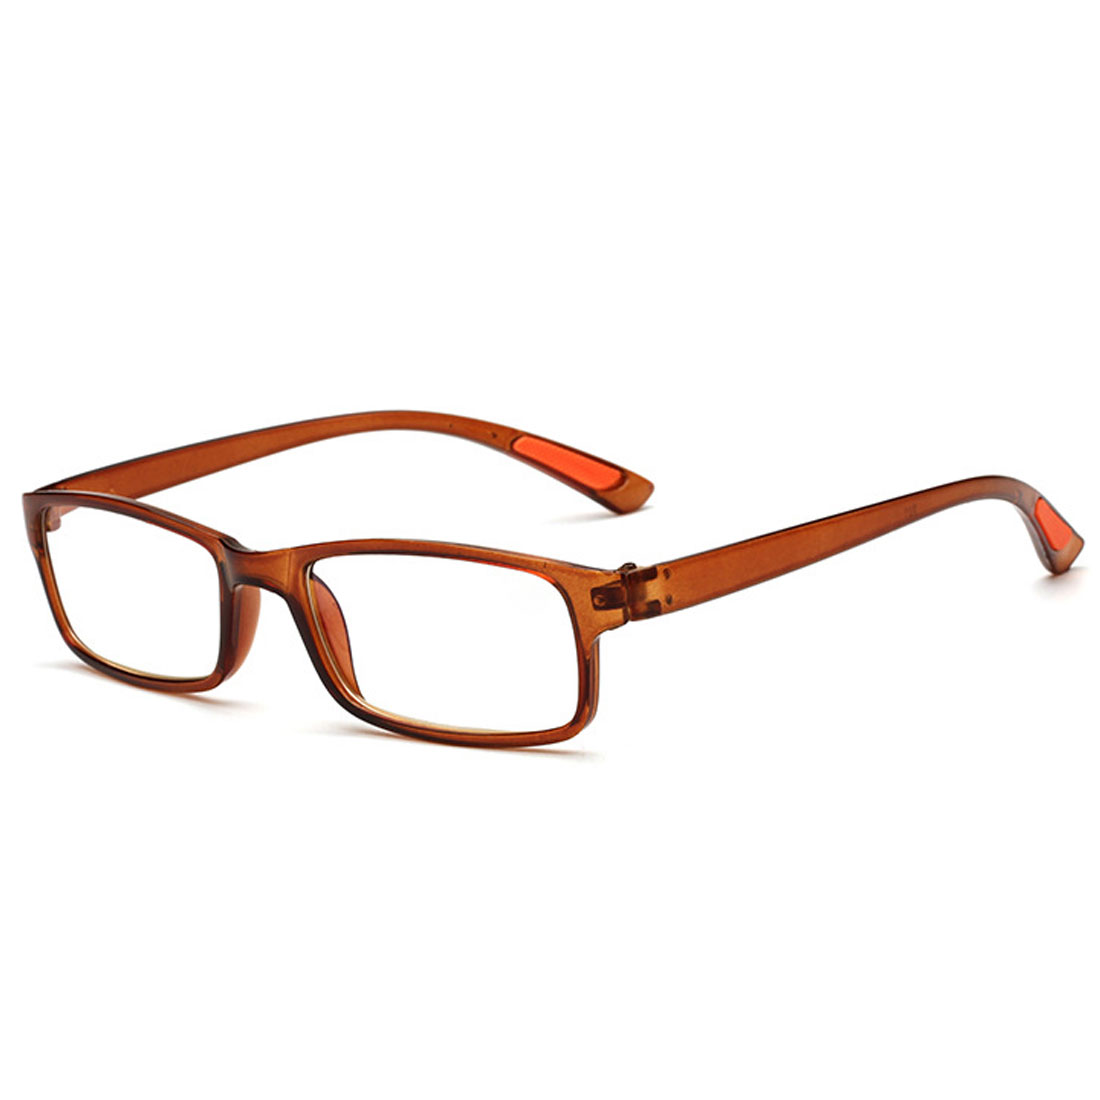 Fashionable Ultralight Rimless Reading Glasses Women Men Clear Lens Anti Blu Ray Computer Glasses Presbyopia Reader Glasses Blu in Men 39 s Reading Glasses from Apparel Accessories